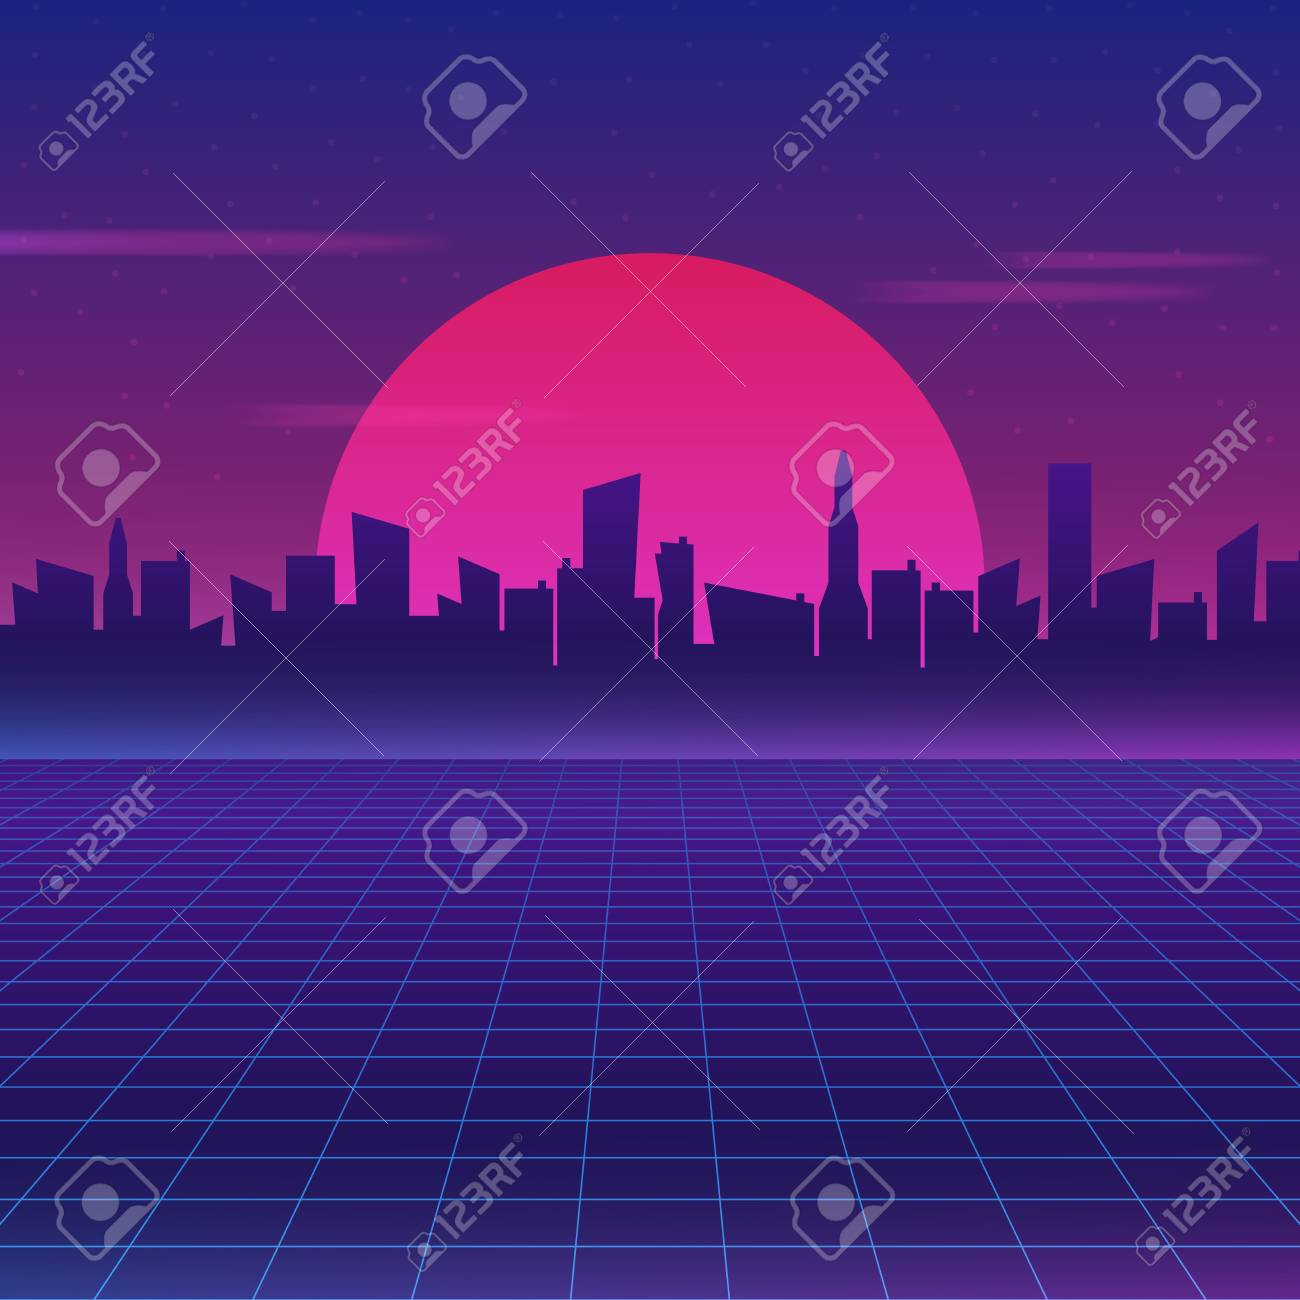 Retro Future 80s Style Sci Fi Wallpaper Futuristic Night City